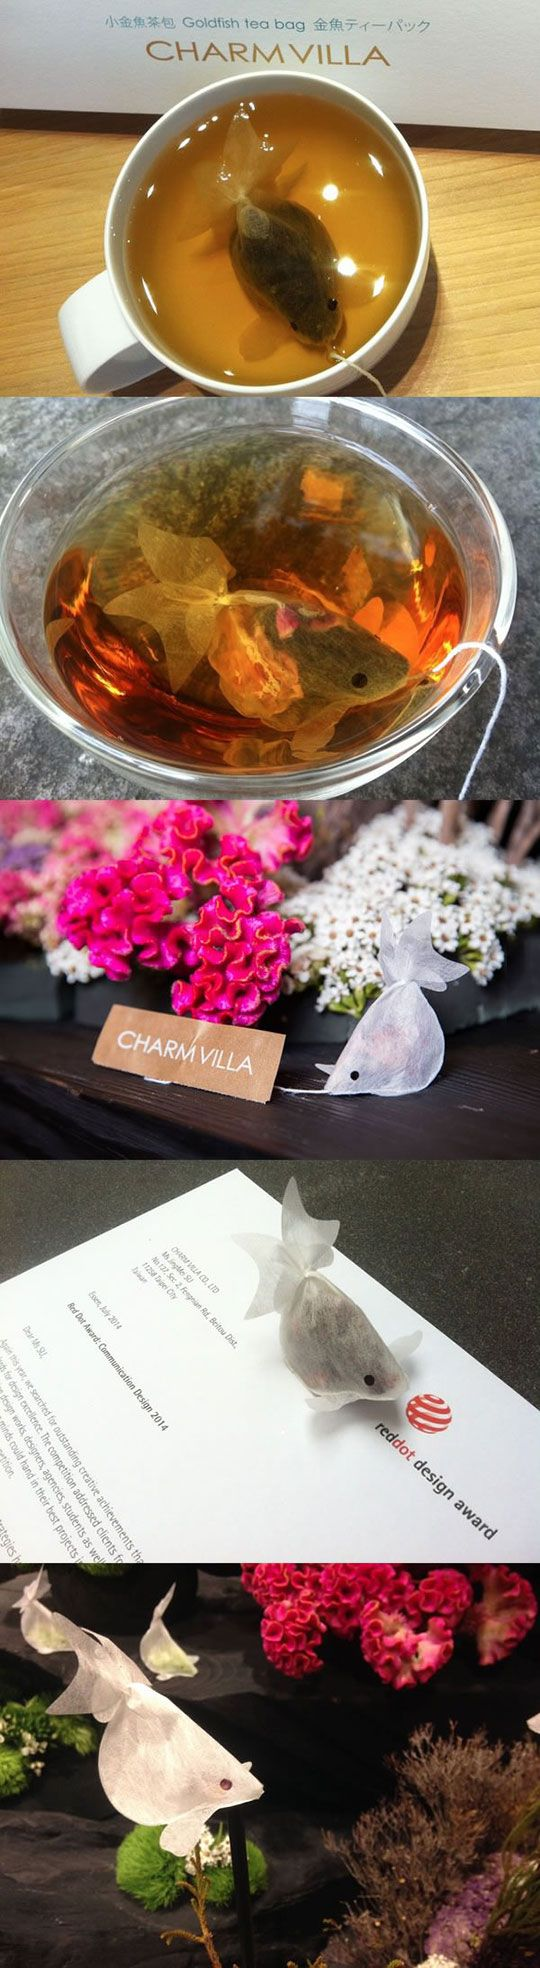 Tea Bags That Look Like Goldfish